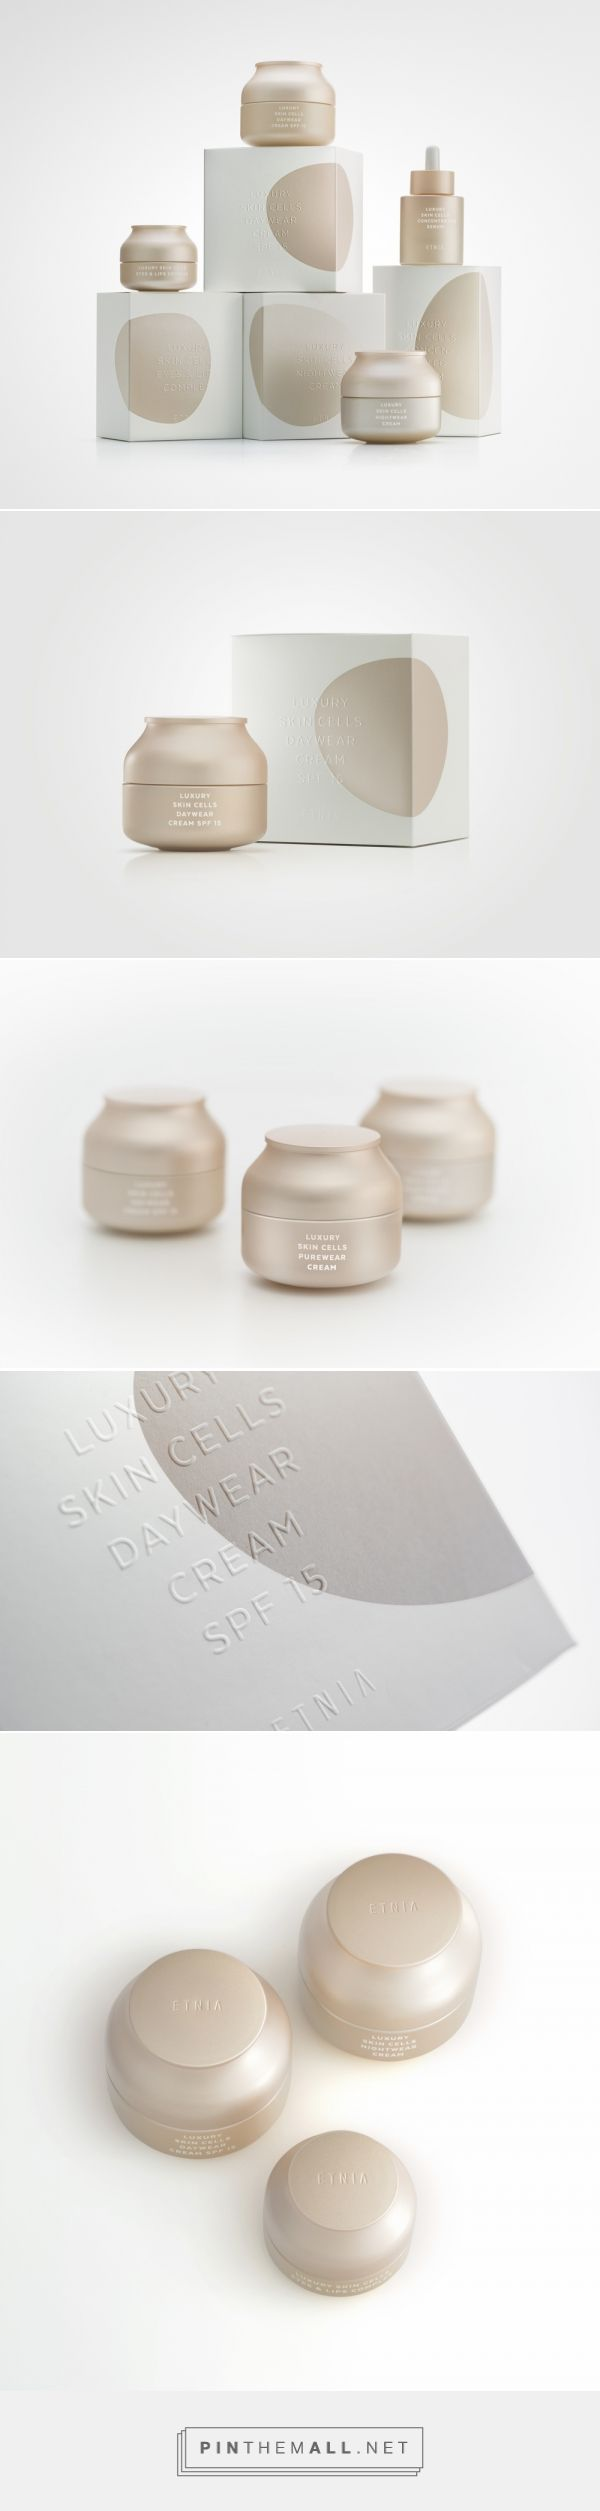 Luxury Skin Cells — The Dieline - Branding & Packaging - created via pinthemall.net - Luxury Beauty - http://amzn.to/2hZFa13